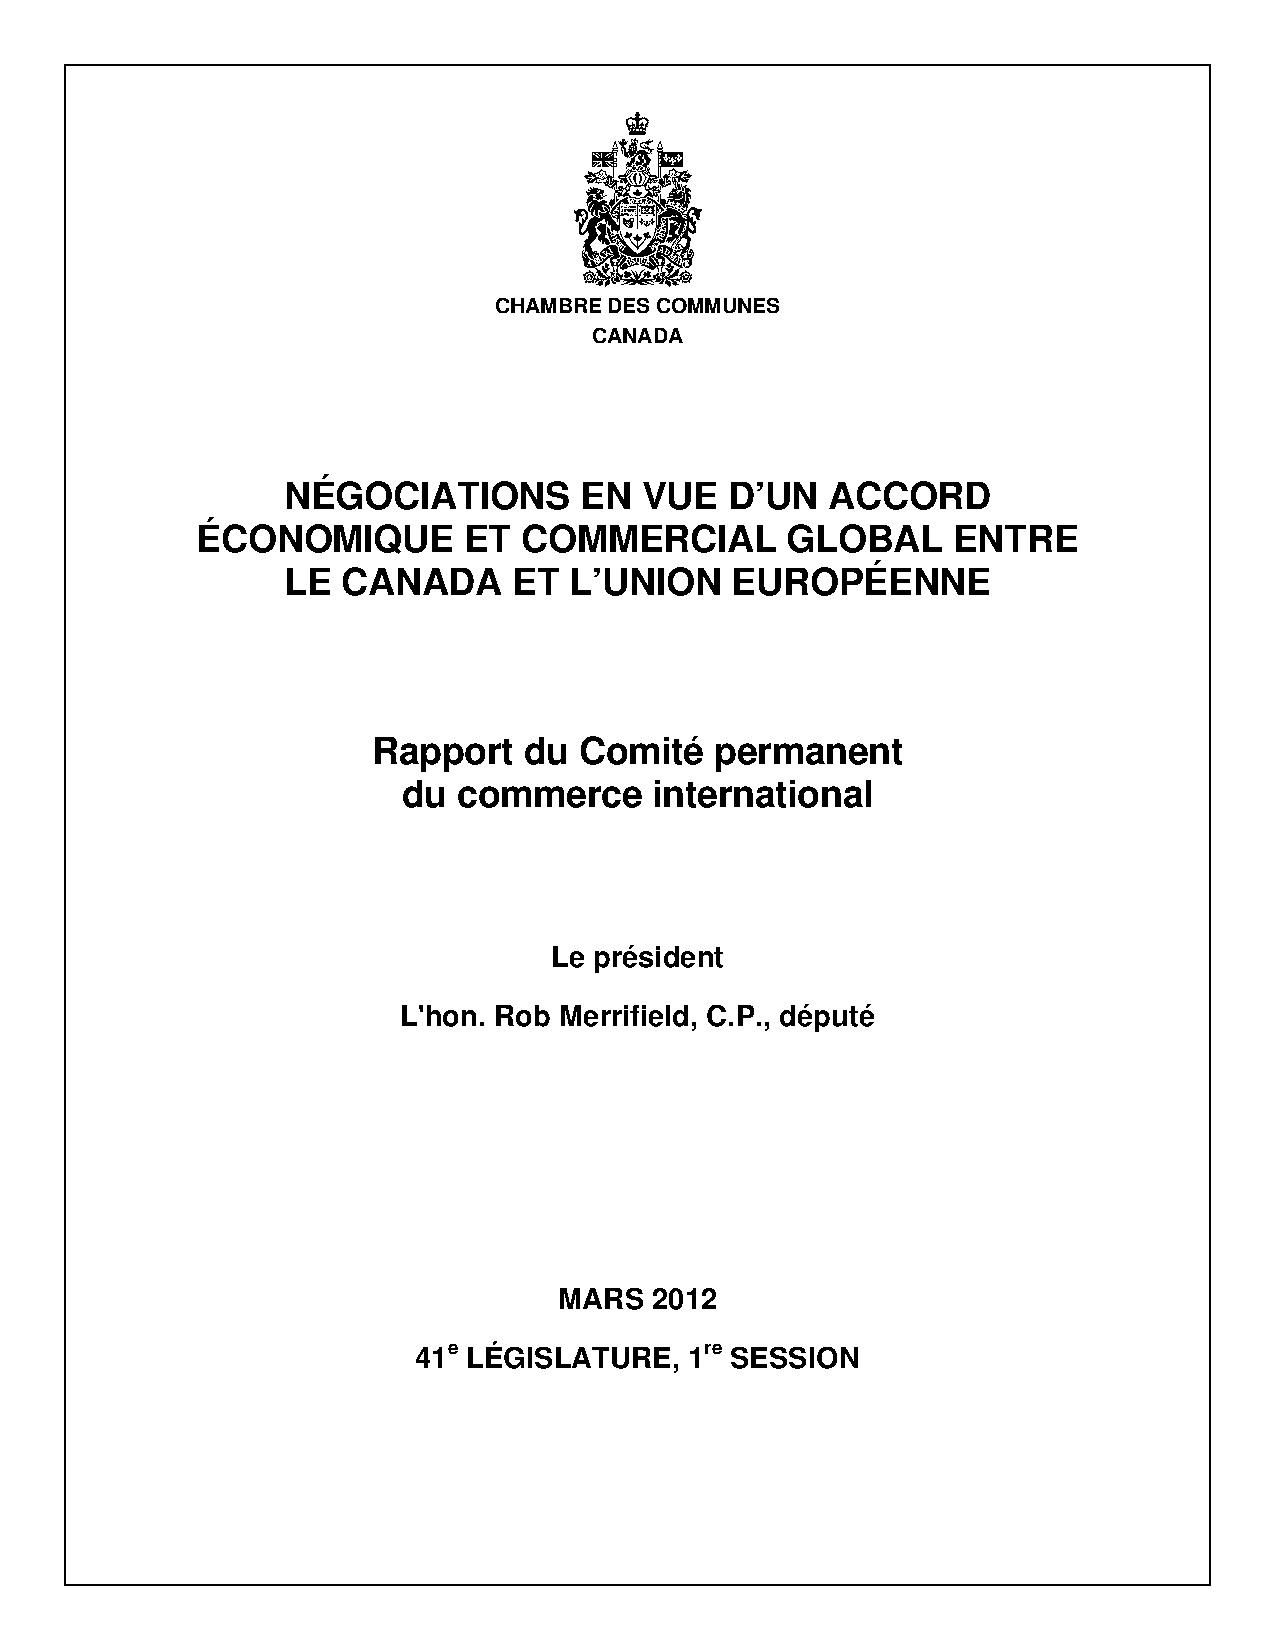 CETA - Rapport du Comité permanent du commerce international - mars 2012.pdf